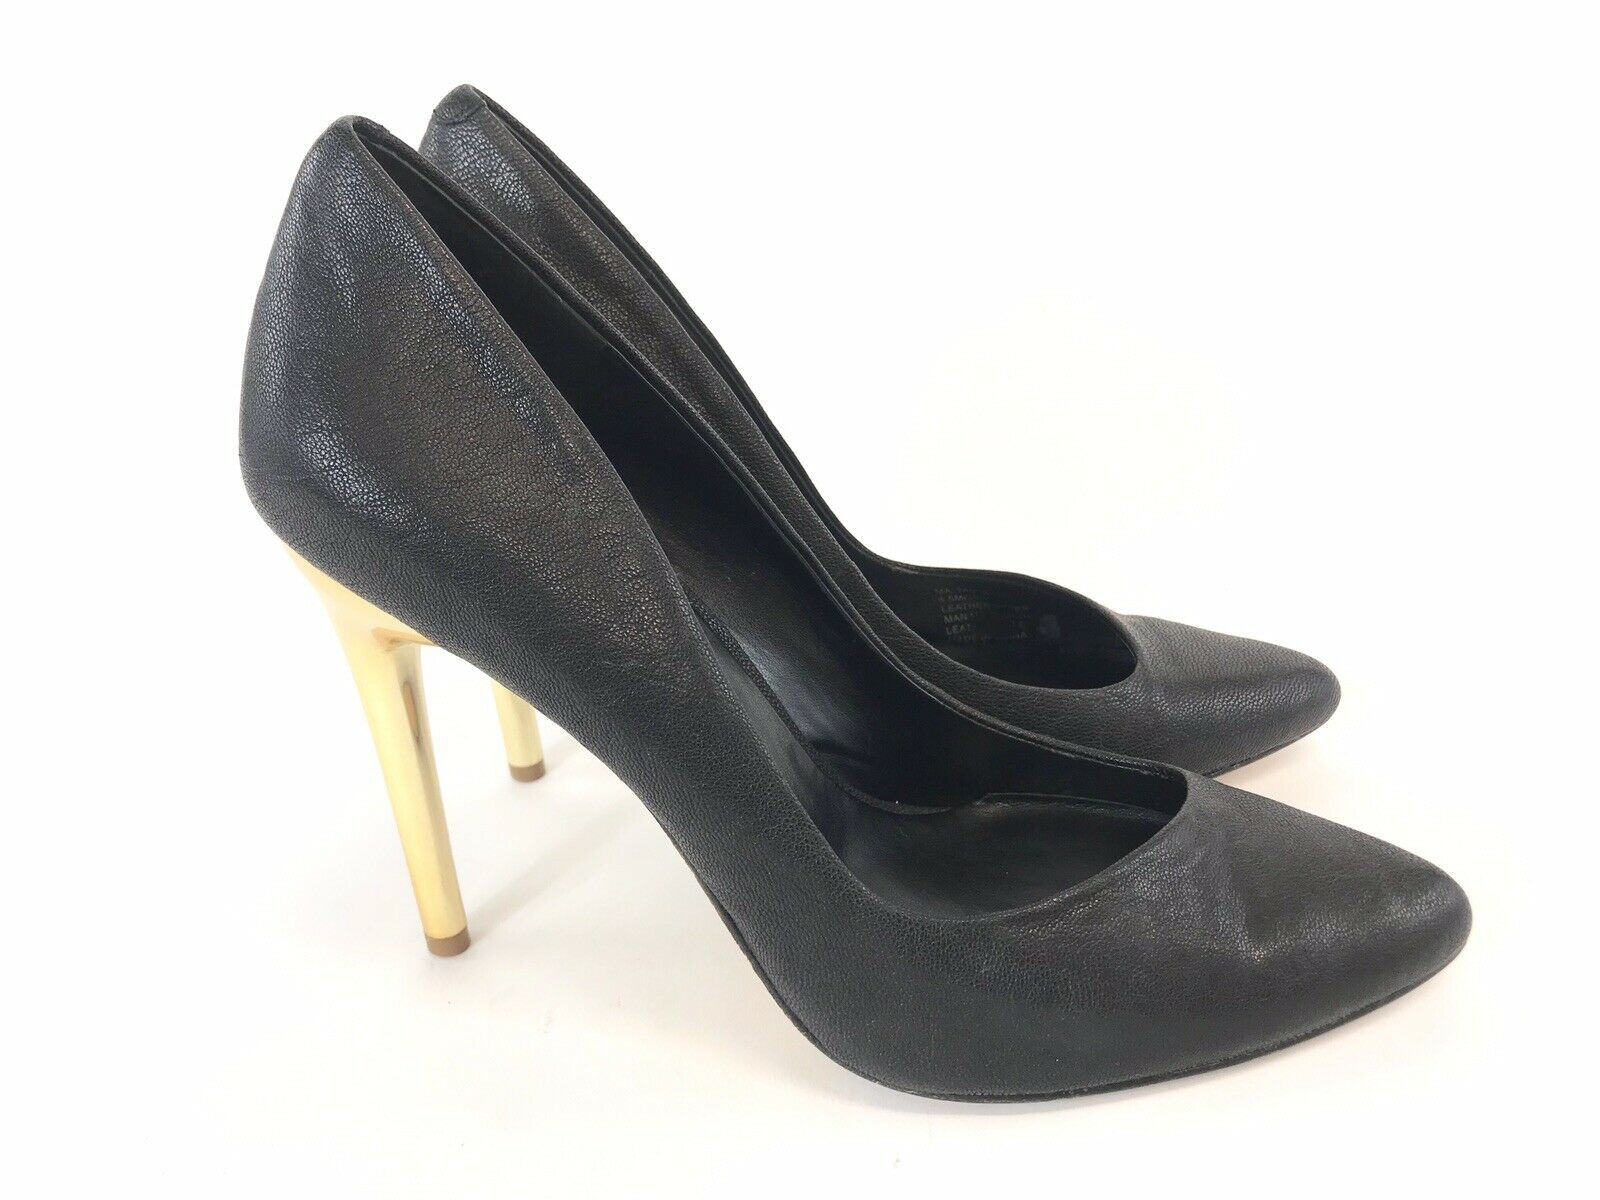 Bcbg Maxazria Ladies Black Leather Court High Heels Stiletto shoes US8.5 M UK6.5